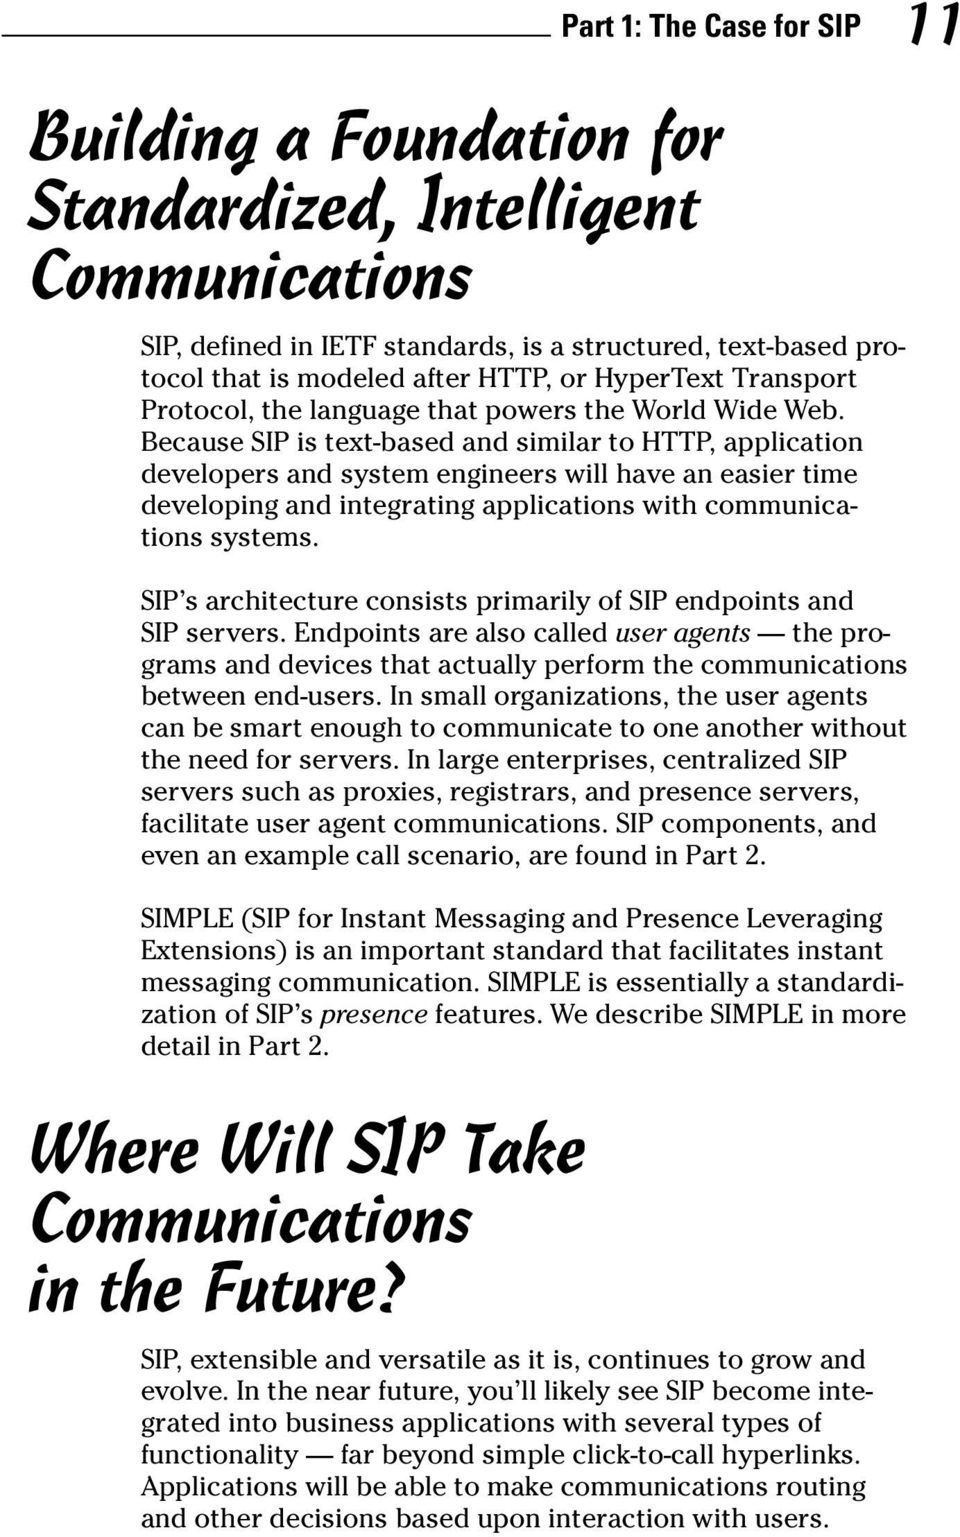 Because SIP is text-based and similar to HTTP, application developers and system engineers will have an easier time developing and integrating applications with communications systems.